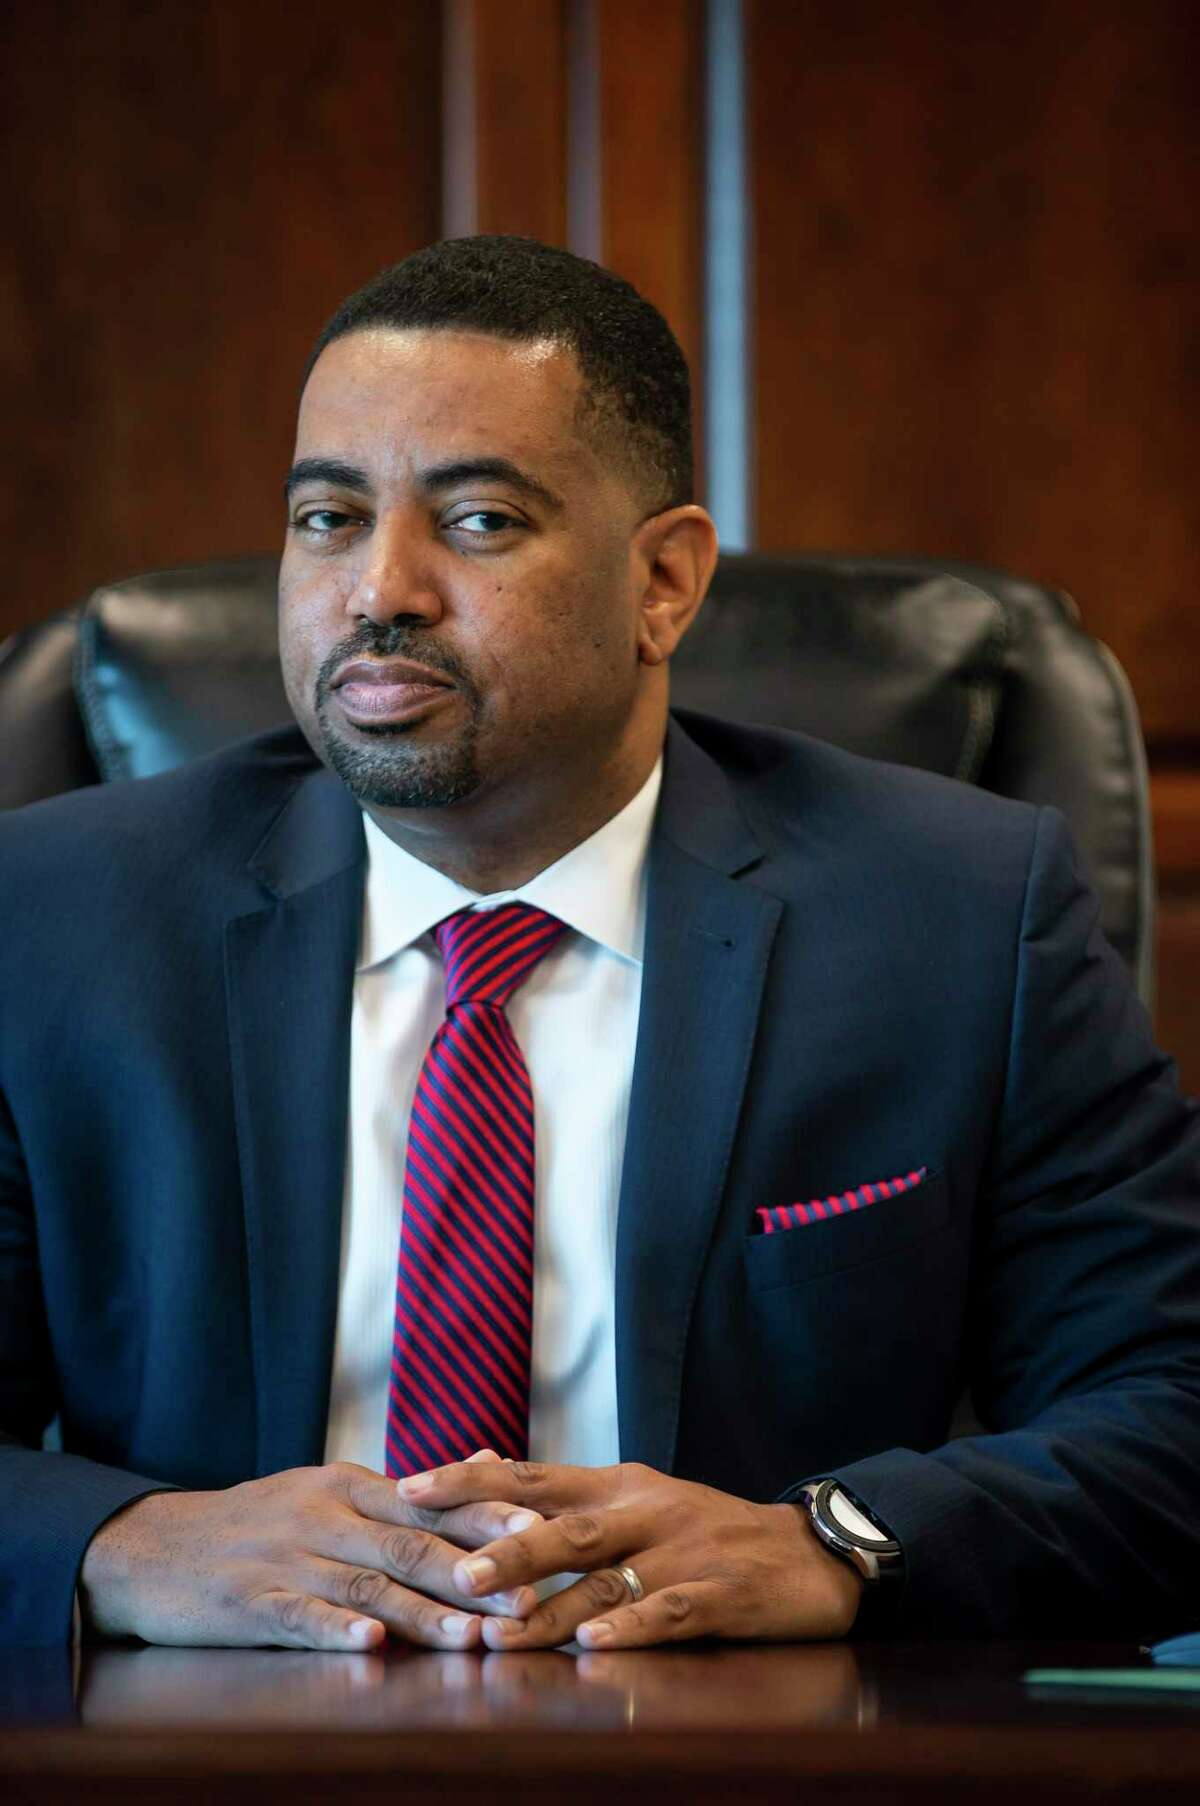 Fort Bend District Attorney Brian Middleton in his offices in Richmond, Monday, Dec. 23, 2019. After winning election in 2018, Middleton became the first Democrat and person of color to the office in 26 years.